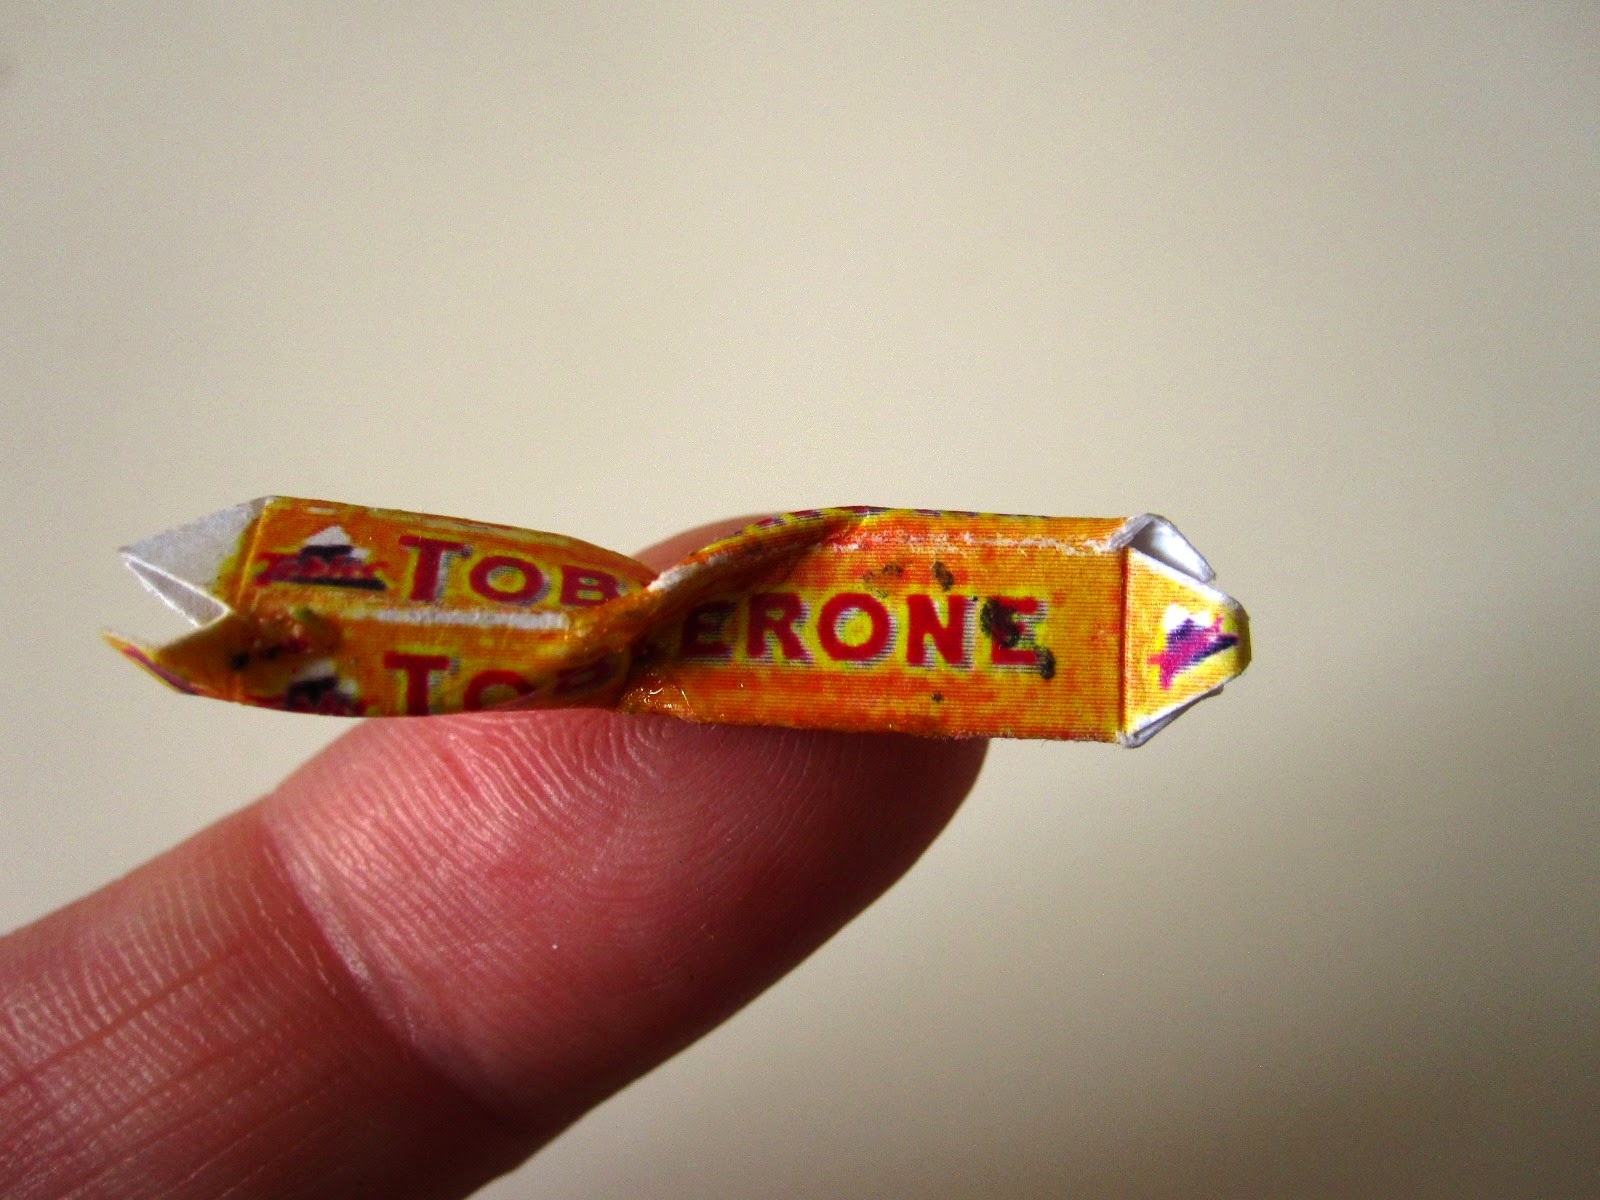 Miniature vintage empty and crumpled Toblerone chocolate package.